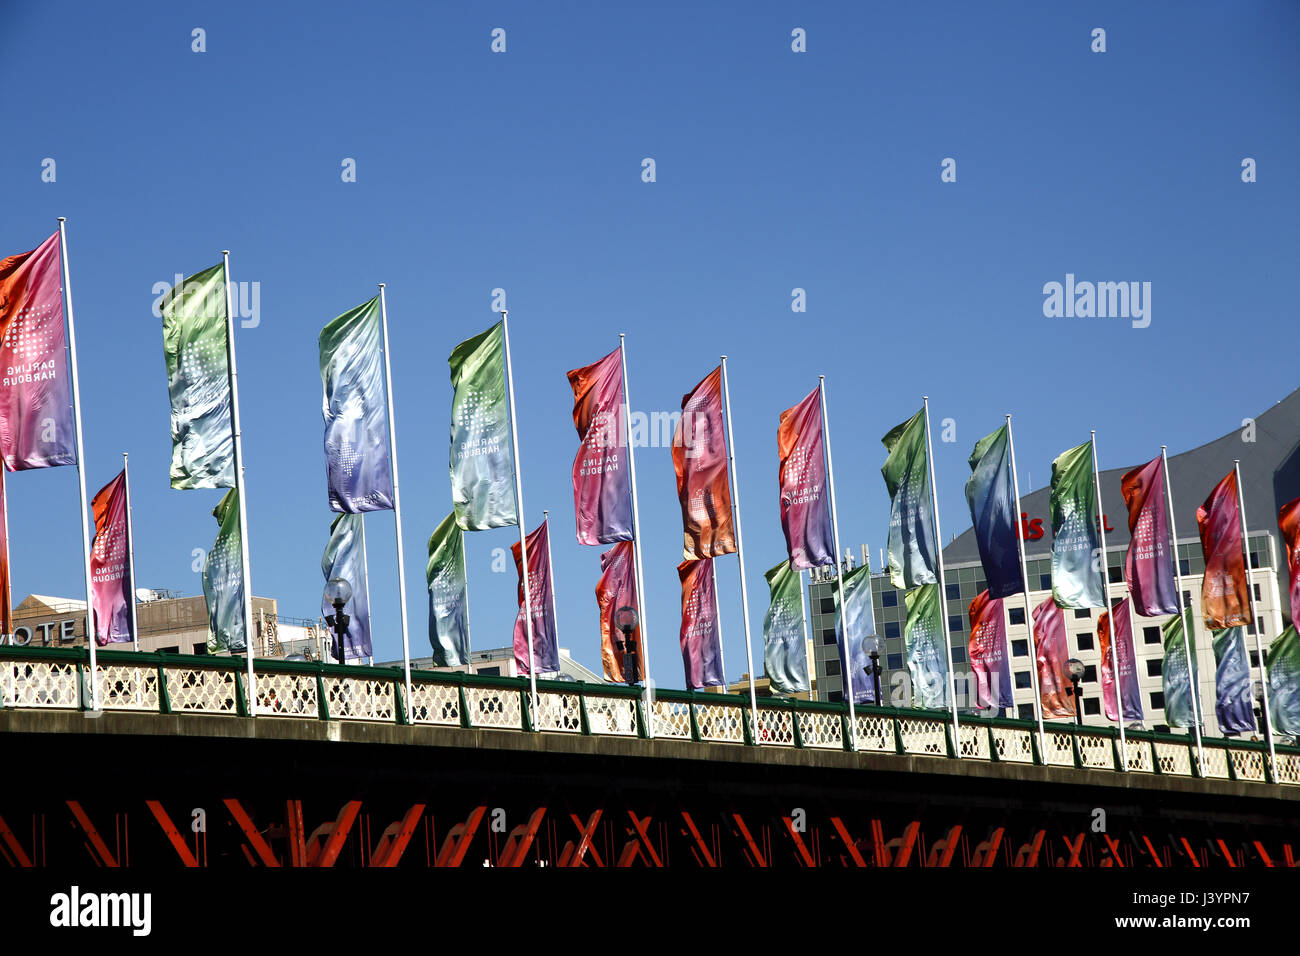 Flags flying over Pyrmont Bridge, Darling Harbour, Sydney - Stock Image